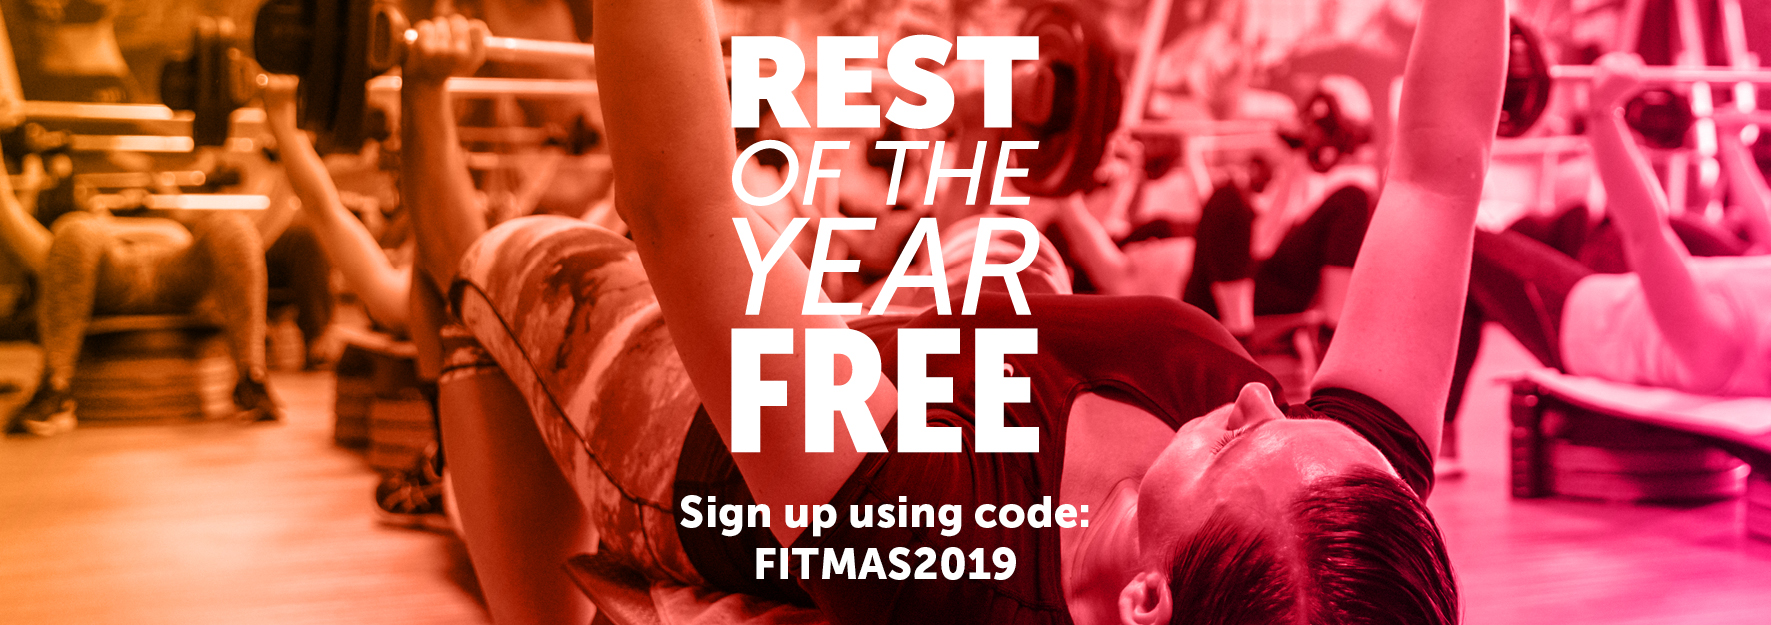 Rest of the year for free